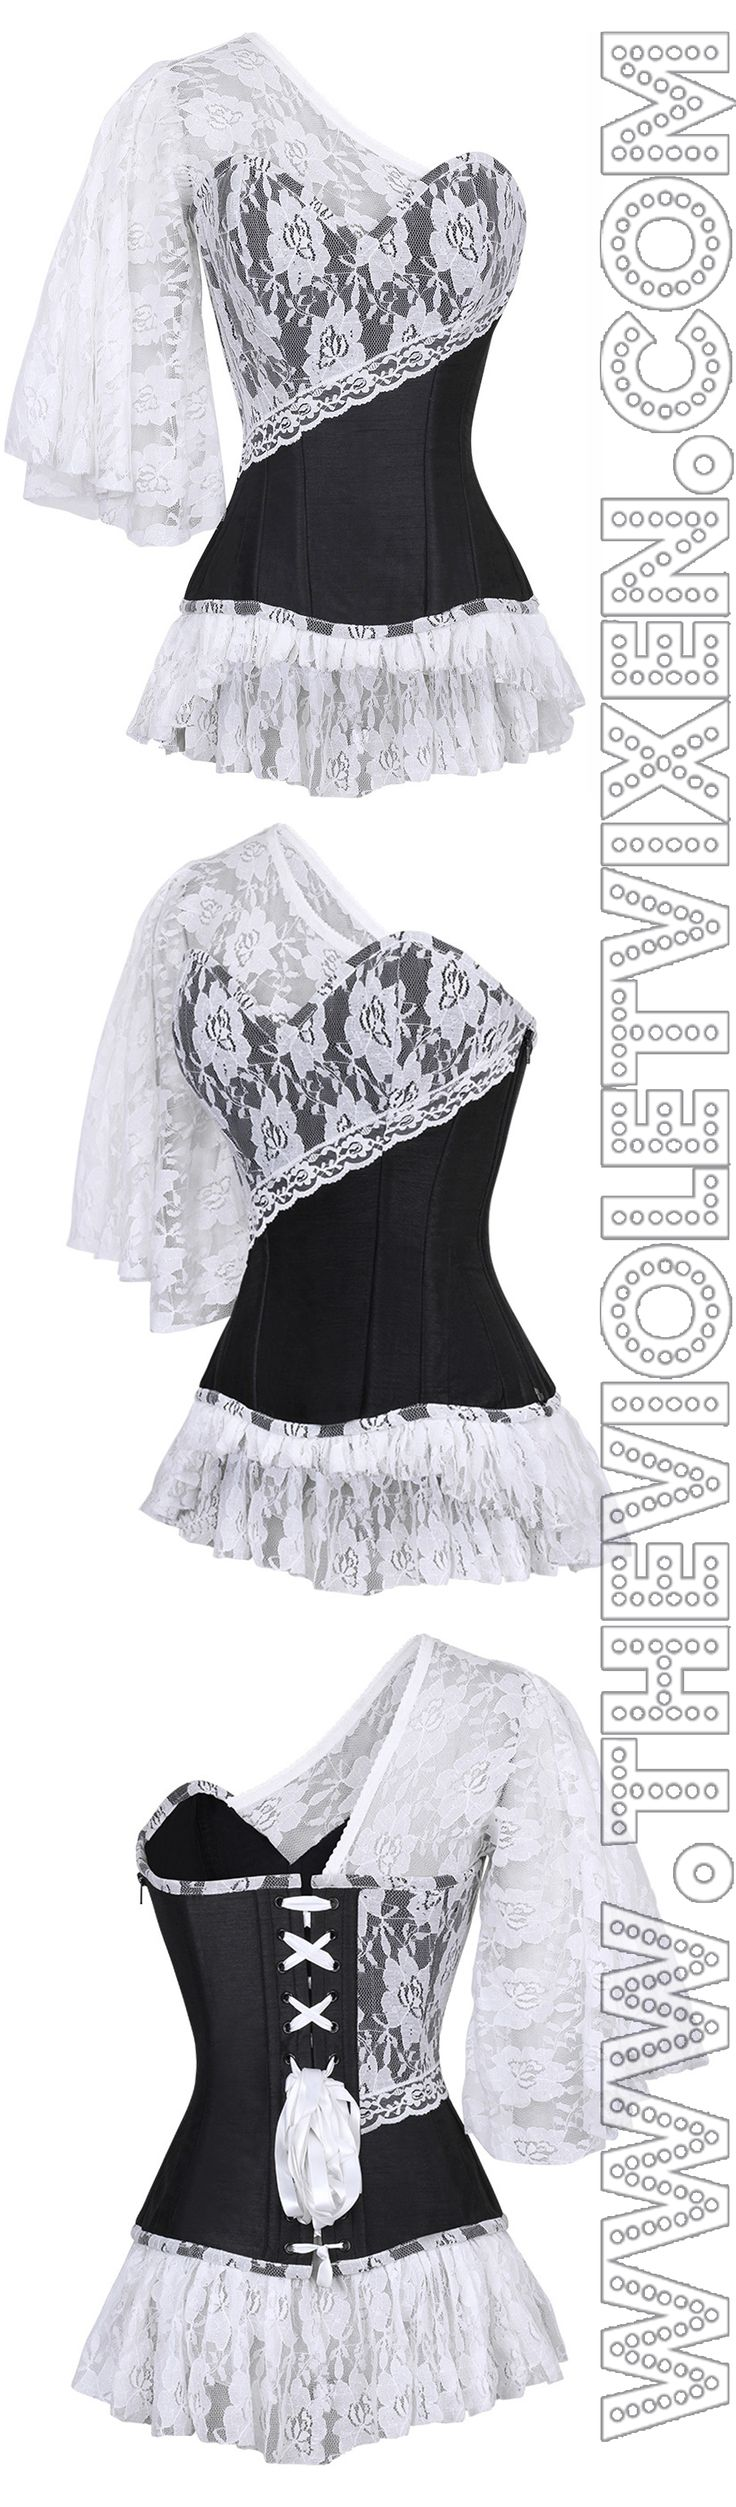 OMG! Sleeves for days. Love this! Ren Fair anyone?  Laced Cloud Black Steel Boned Corset - http://thevioletvixen.com/corsets/laced-cloud-black-corset/